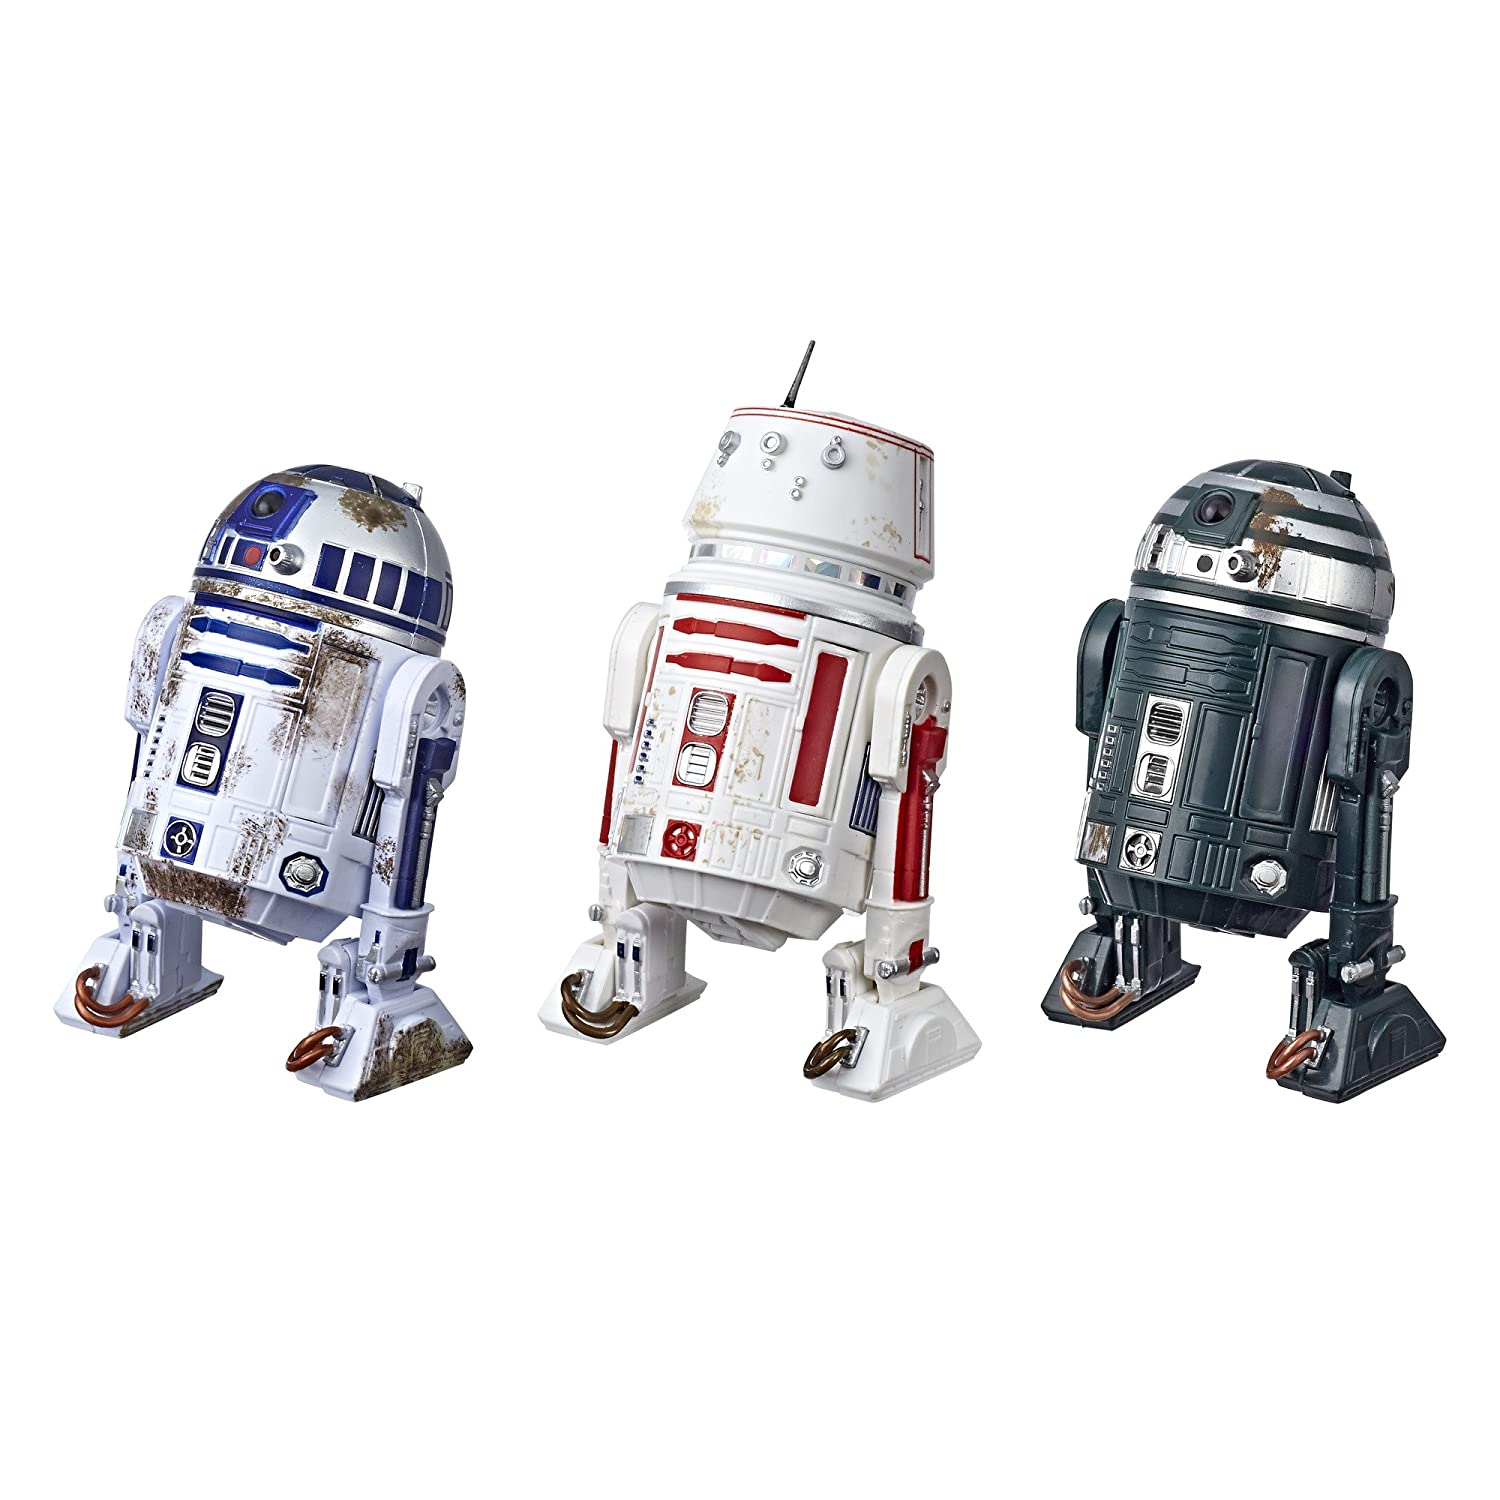 Star Wars Droid 3 Pack Action Figure(Amazon Exclusive) Hasbro - Import E2311AC1